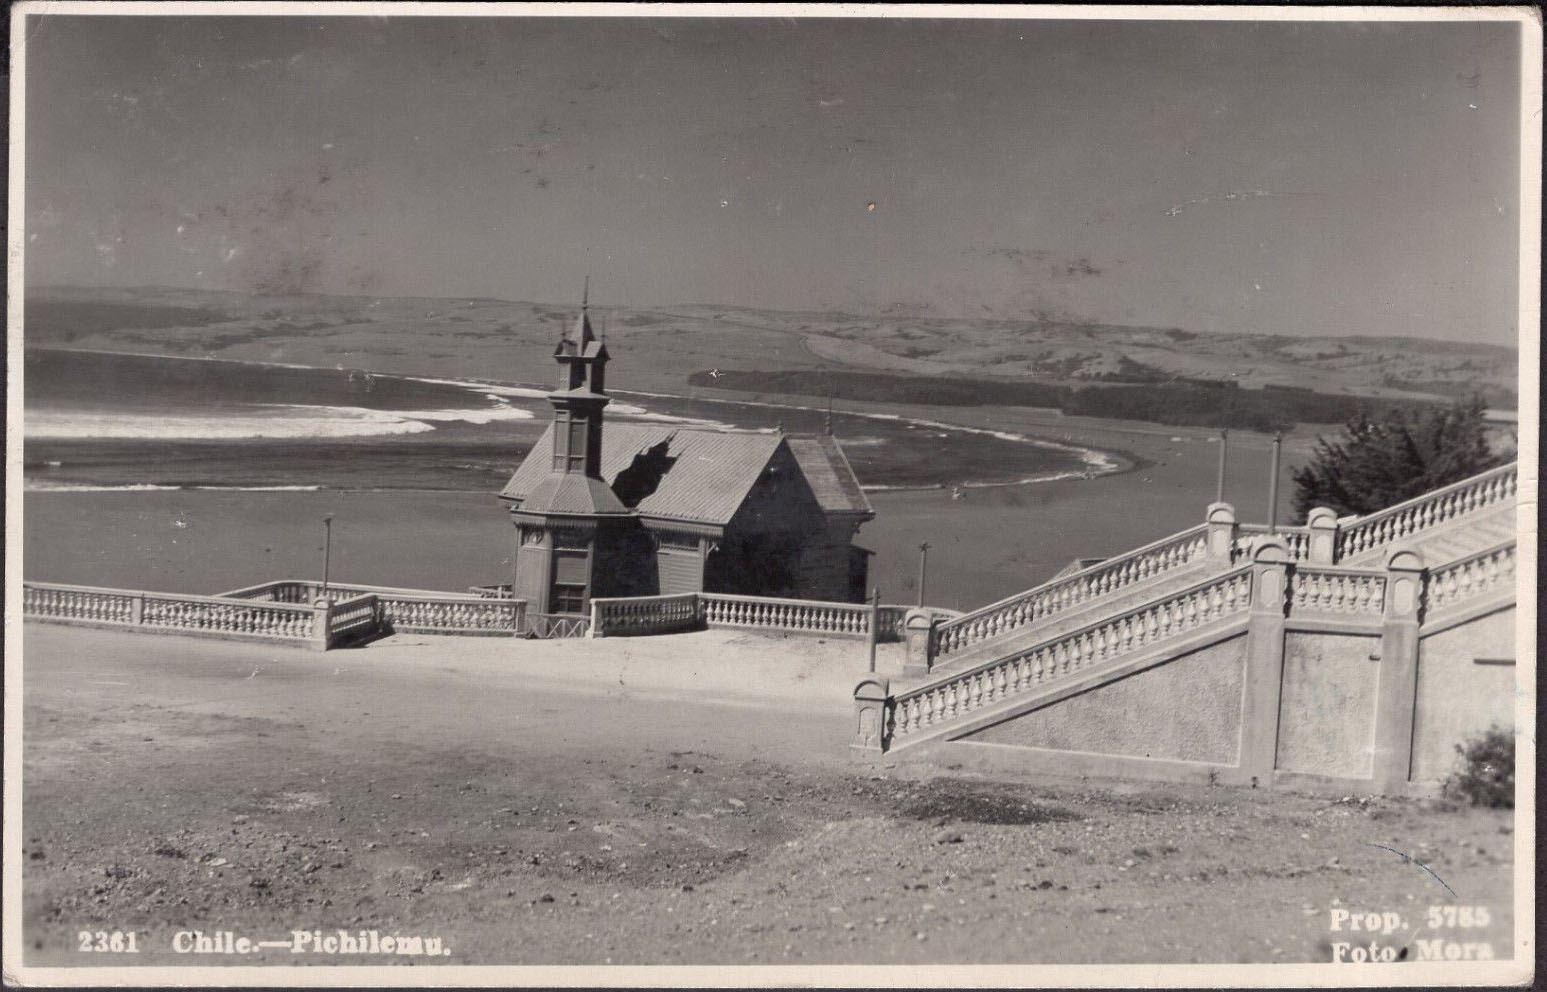 Enterreno - Fotos históricas de chile - fotos antiguas de Chile - Picihilemu, 1945